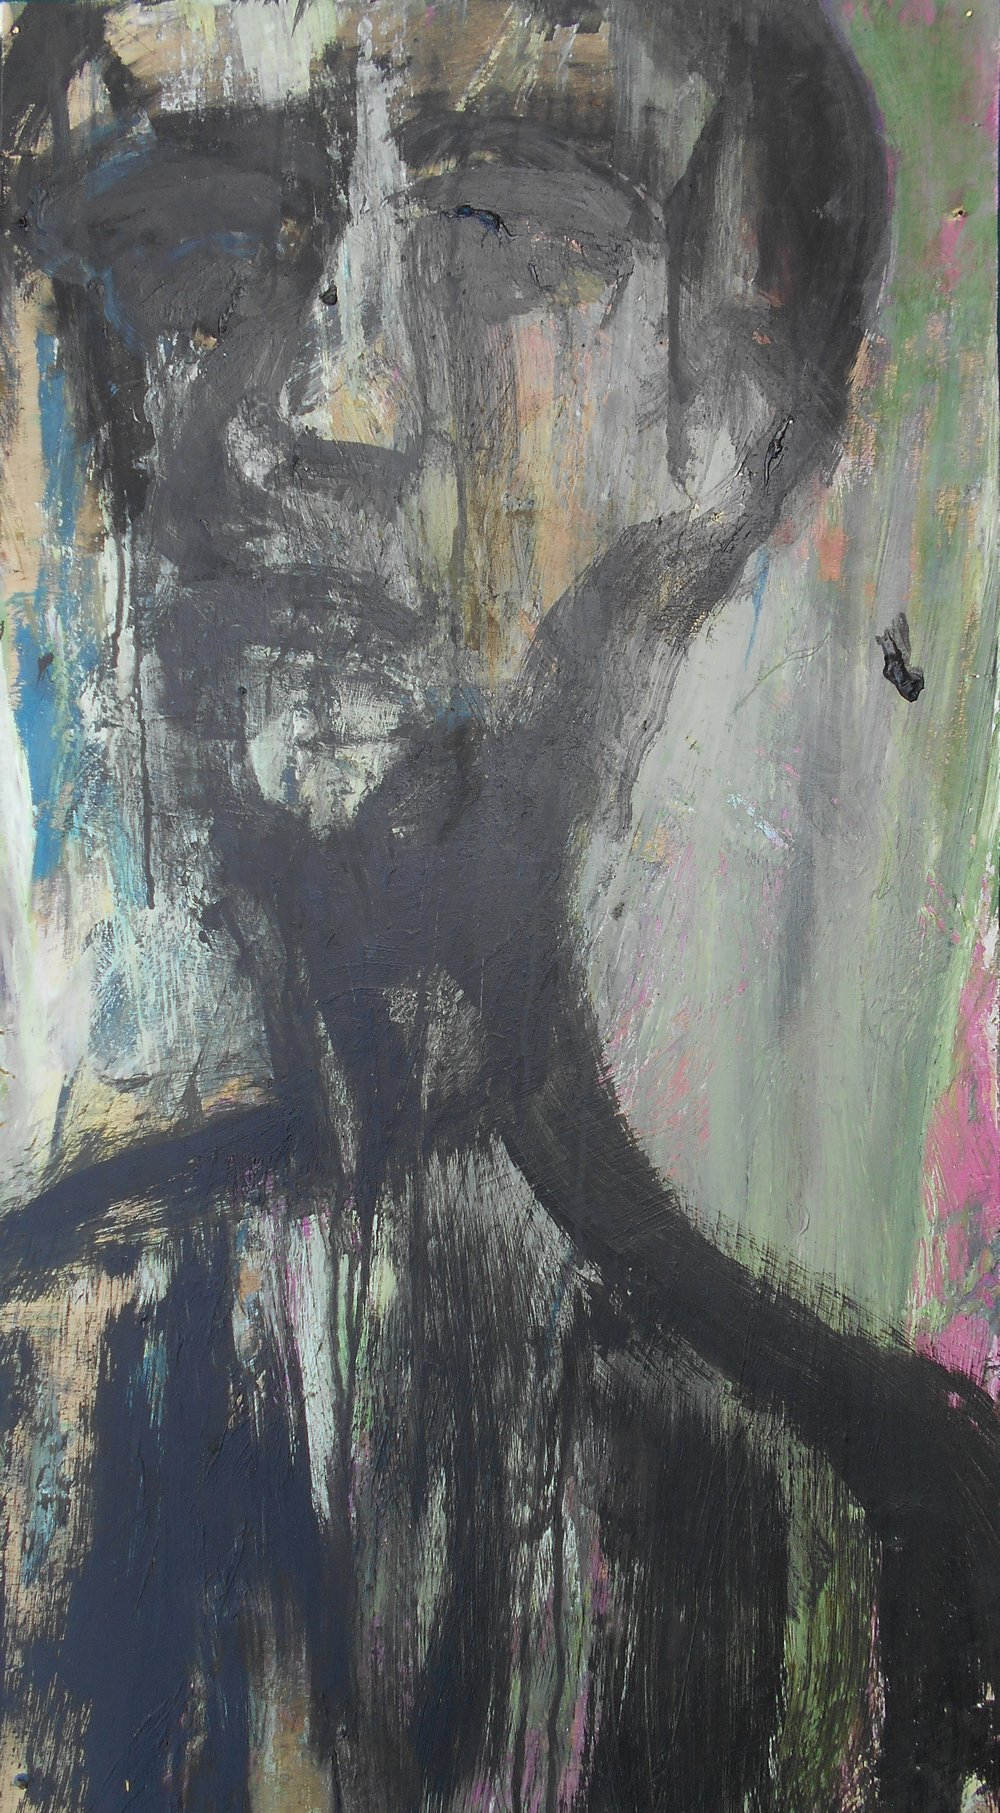 #2 Stephen Perrone- Man Described in Black - 2012 - 36x18 - a on wood - $1500.JPG